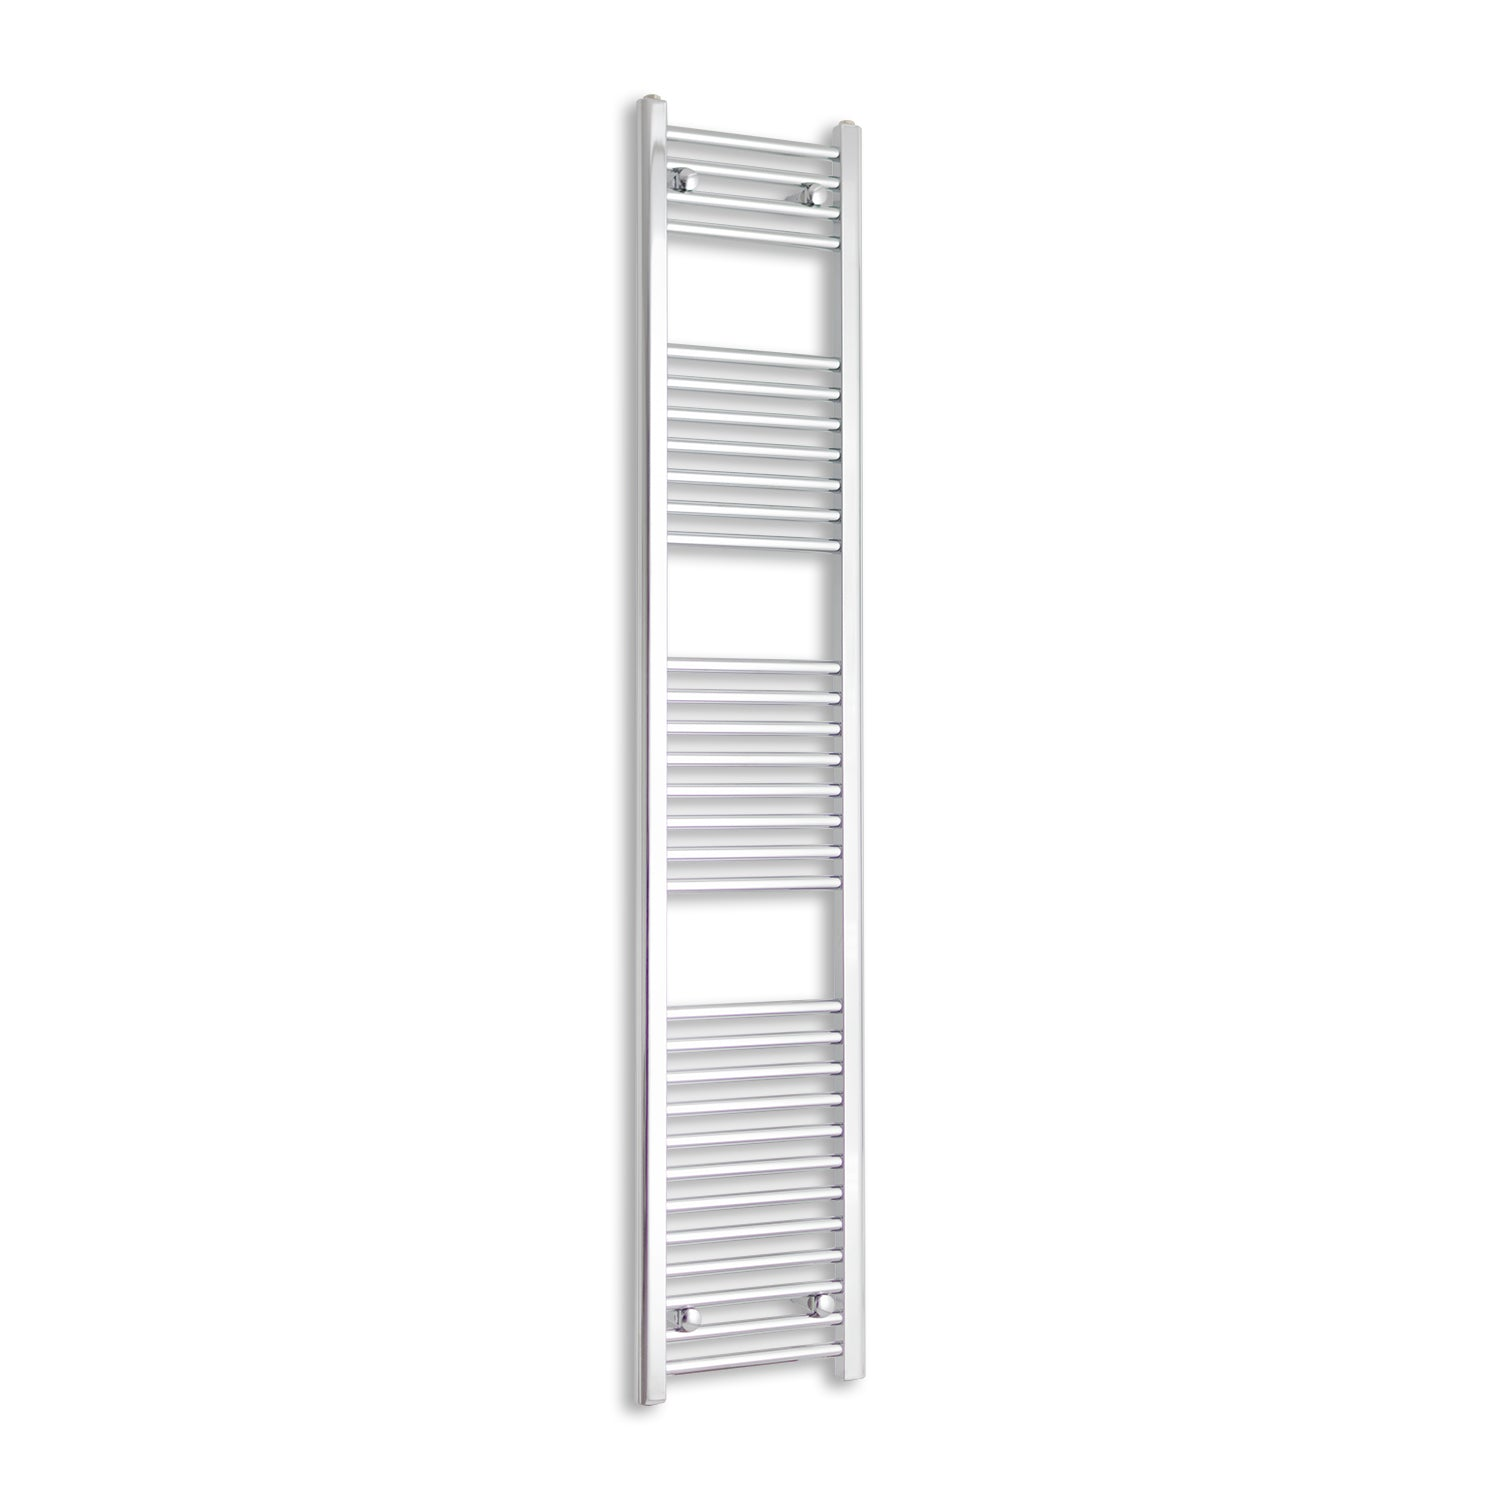 350mm Wide 1800mm High Flat Chrome Heated Towel Rail Radiator,Towel Rail Only